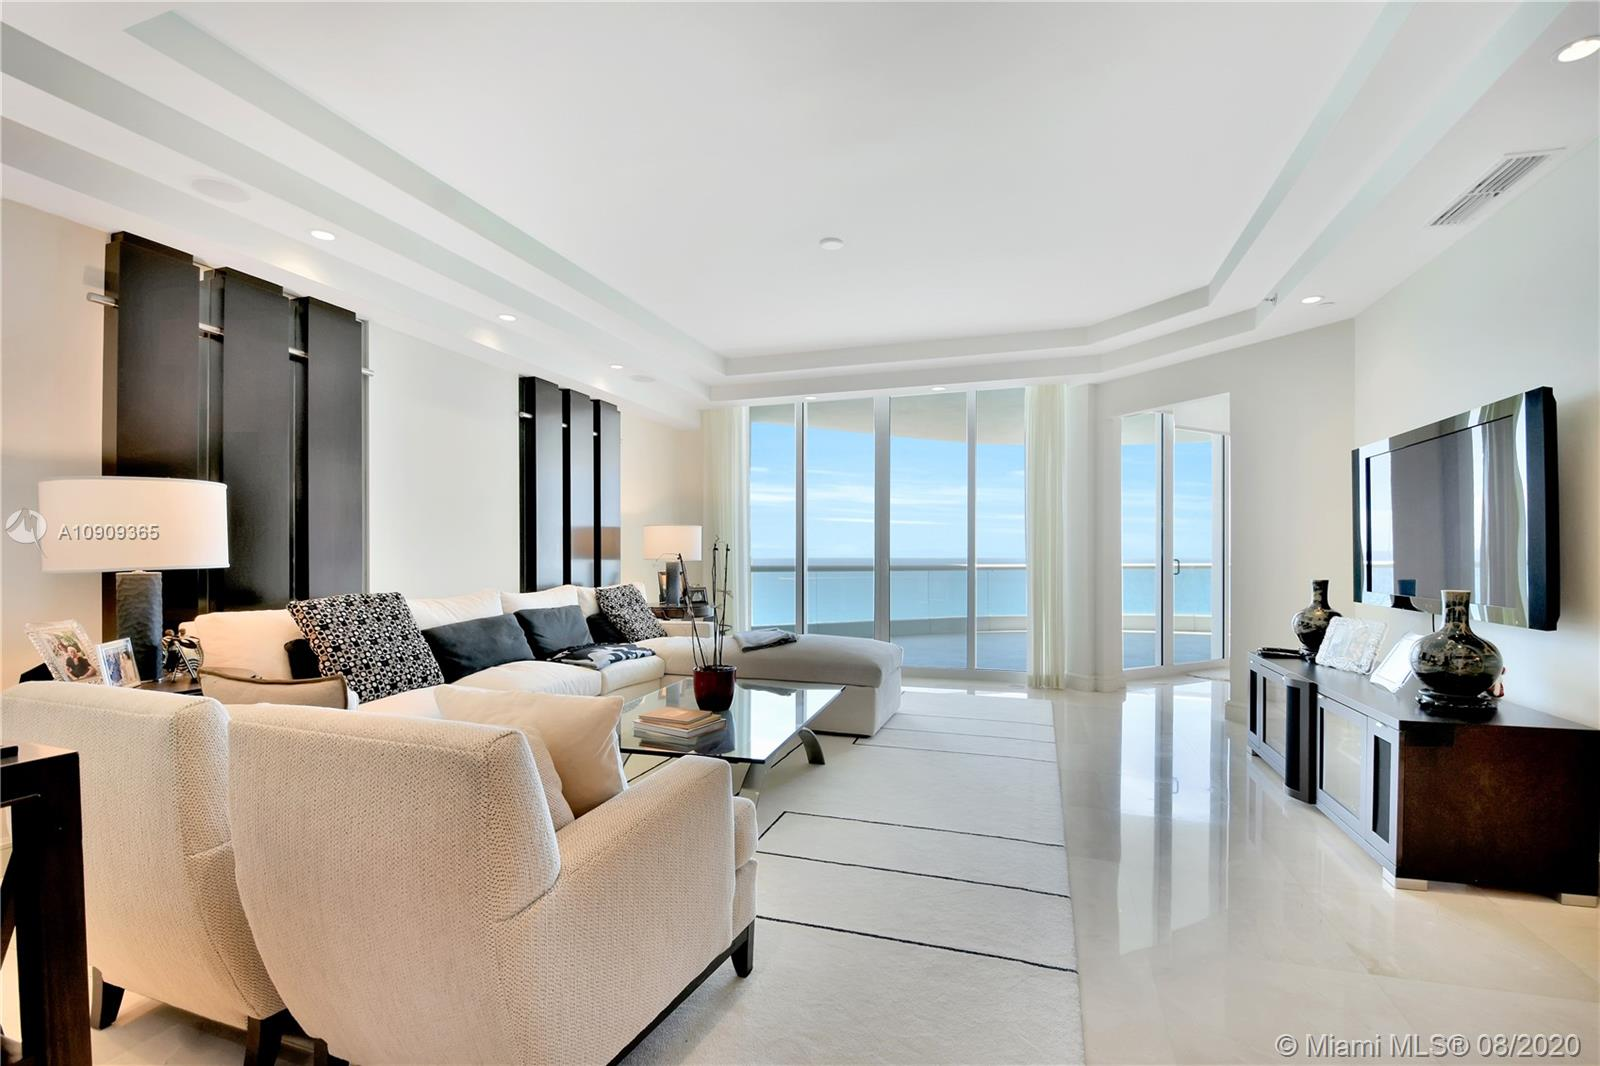 Turnberry Ocean Colony South #1701 - 16051 COLLINS AV #1701, Sunny Isles Beach, FL 33160